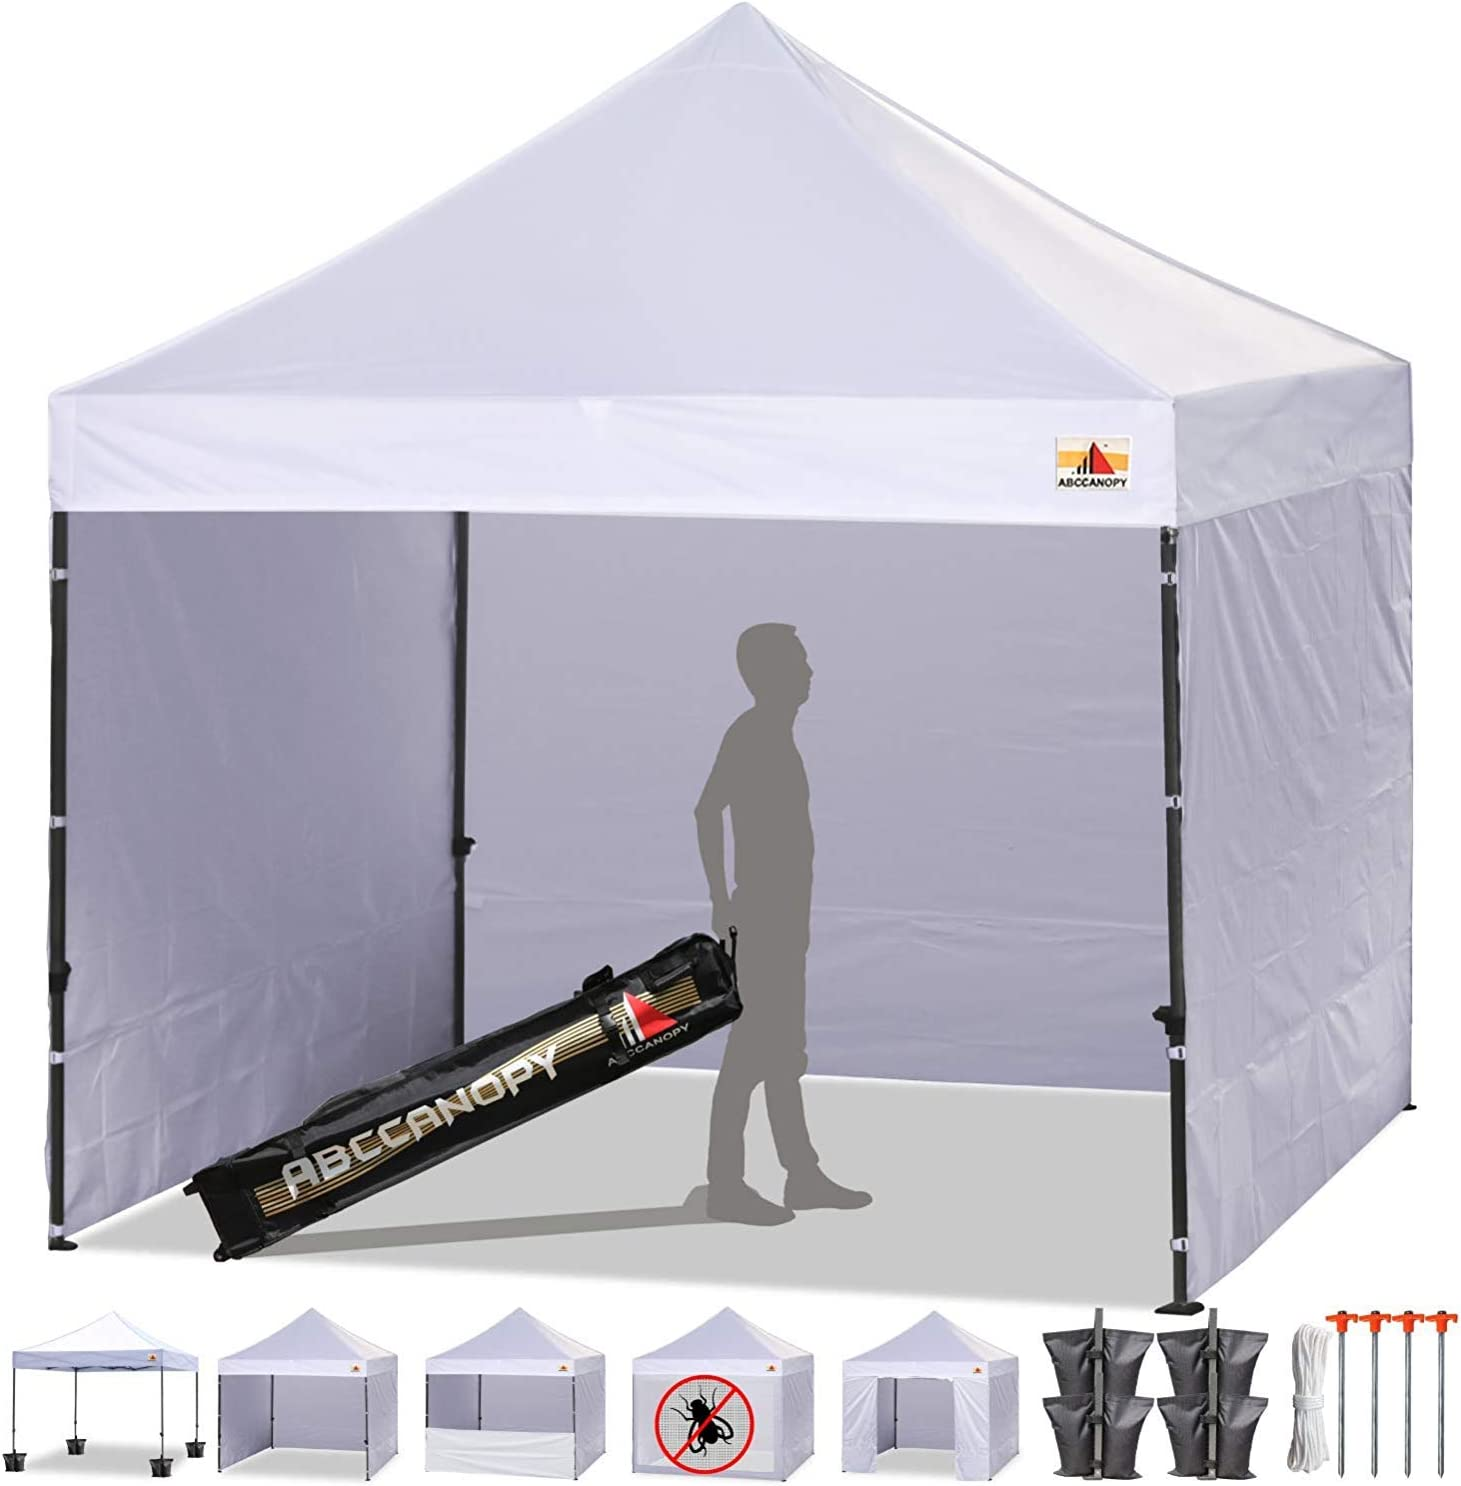 ABCCANOPY Canopy Tent Popup Canopy 10×10 Pop Up Canopies Commercial Tents Market stall with 6 Removable Sidewalls and Roller Bag Bonus 4 Weight Bags and 10ft Screen Netting and Half Wall, Bright White